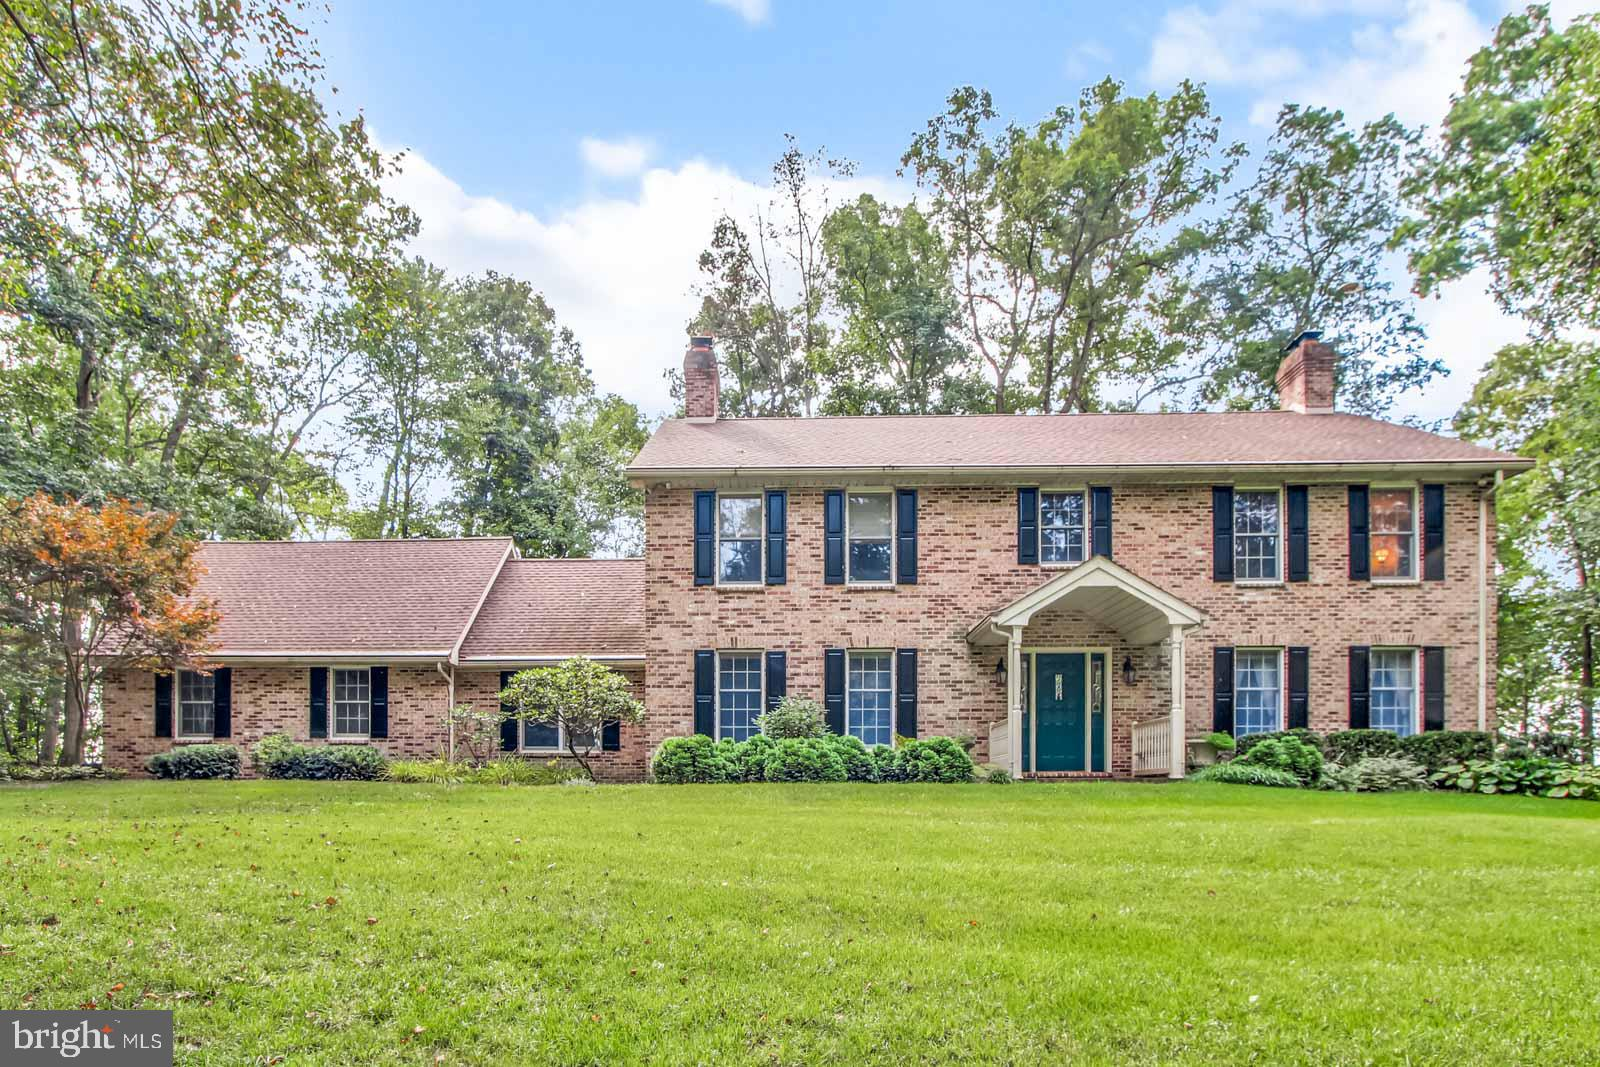 767 VALLEY DRIVE, DALLASTOWN, PA 17313